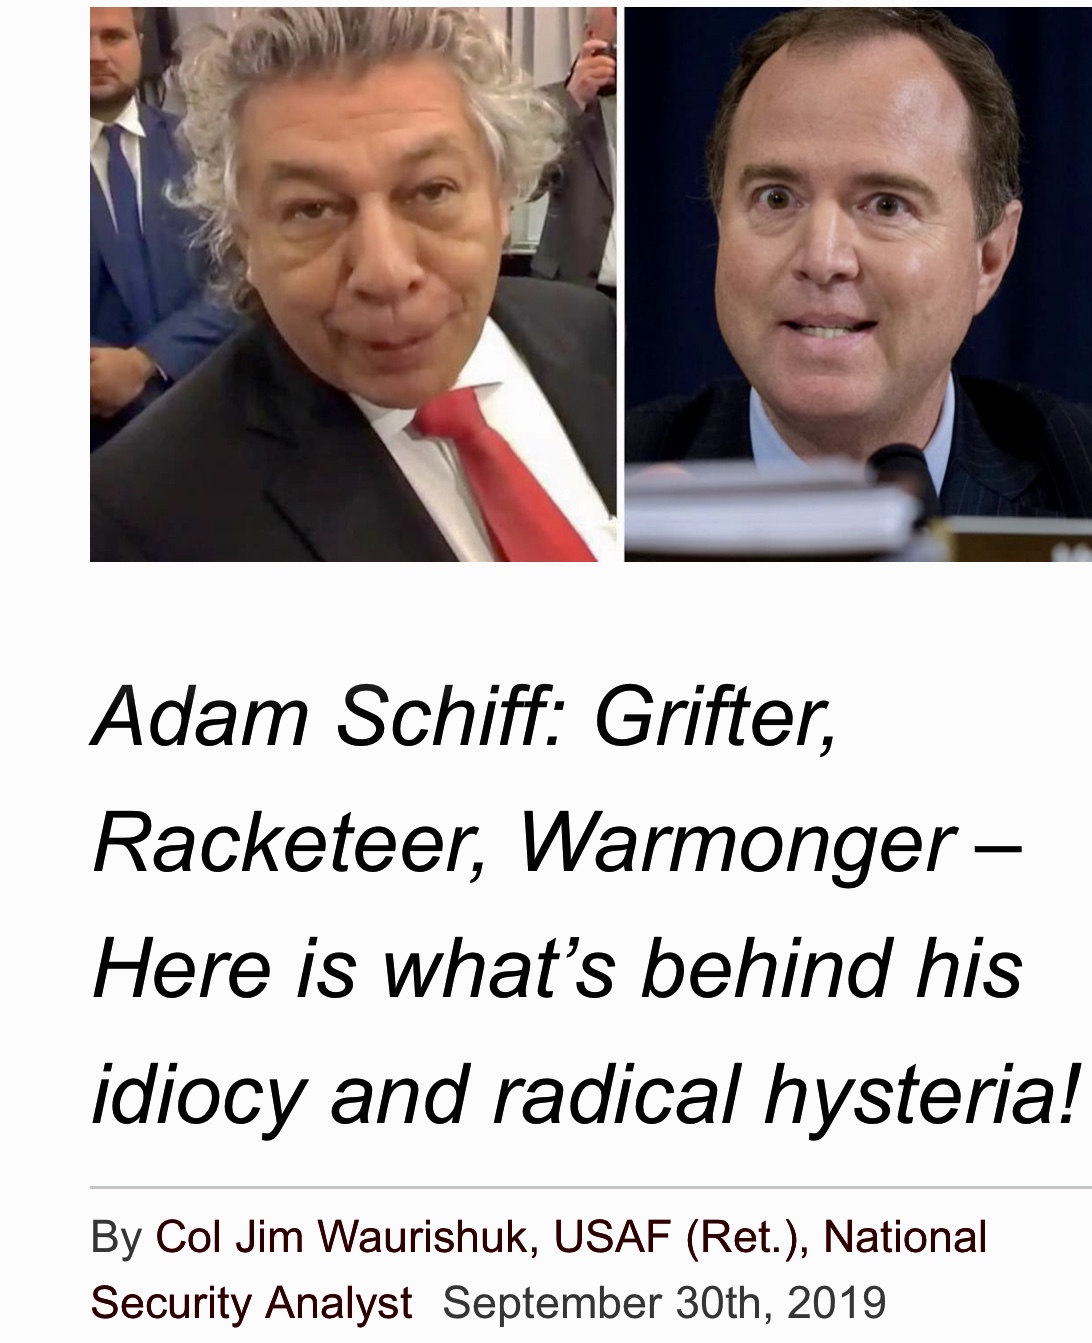 Adam Schiff: Grifter, Racketeer, Warmonger What's behind his idiocy and radical hysteria!